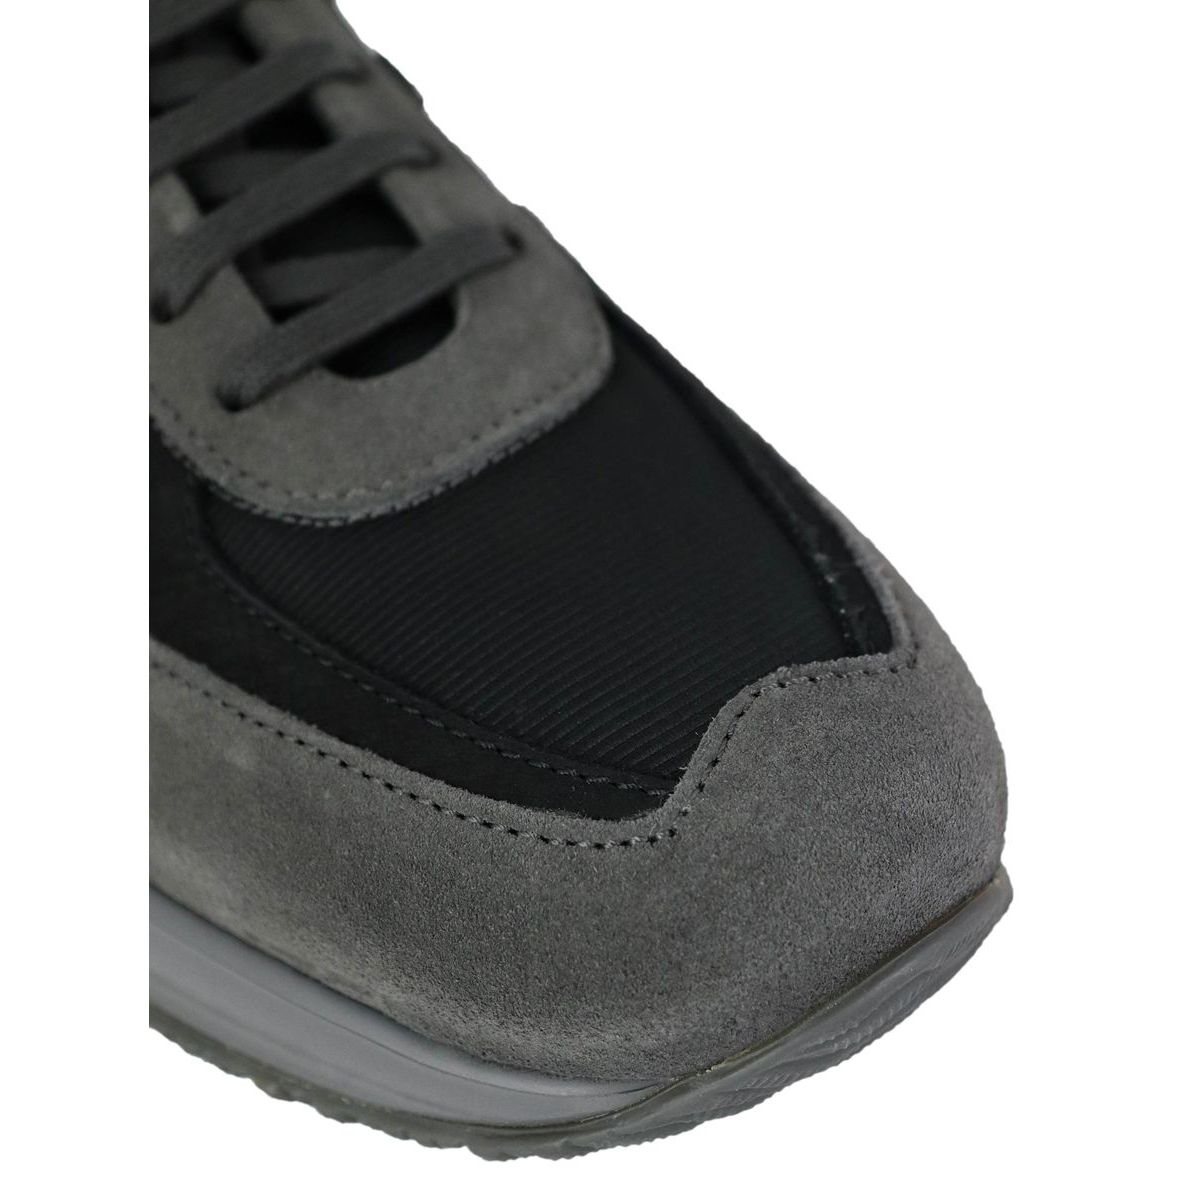 New interactive sneakers in suede leather Gray / black Hogan